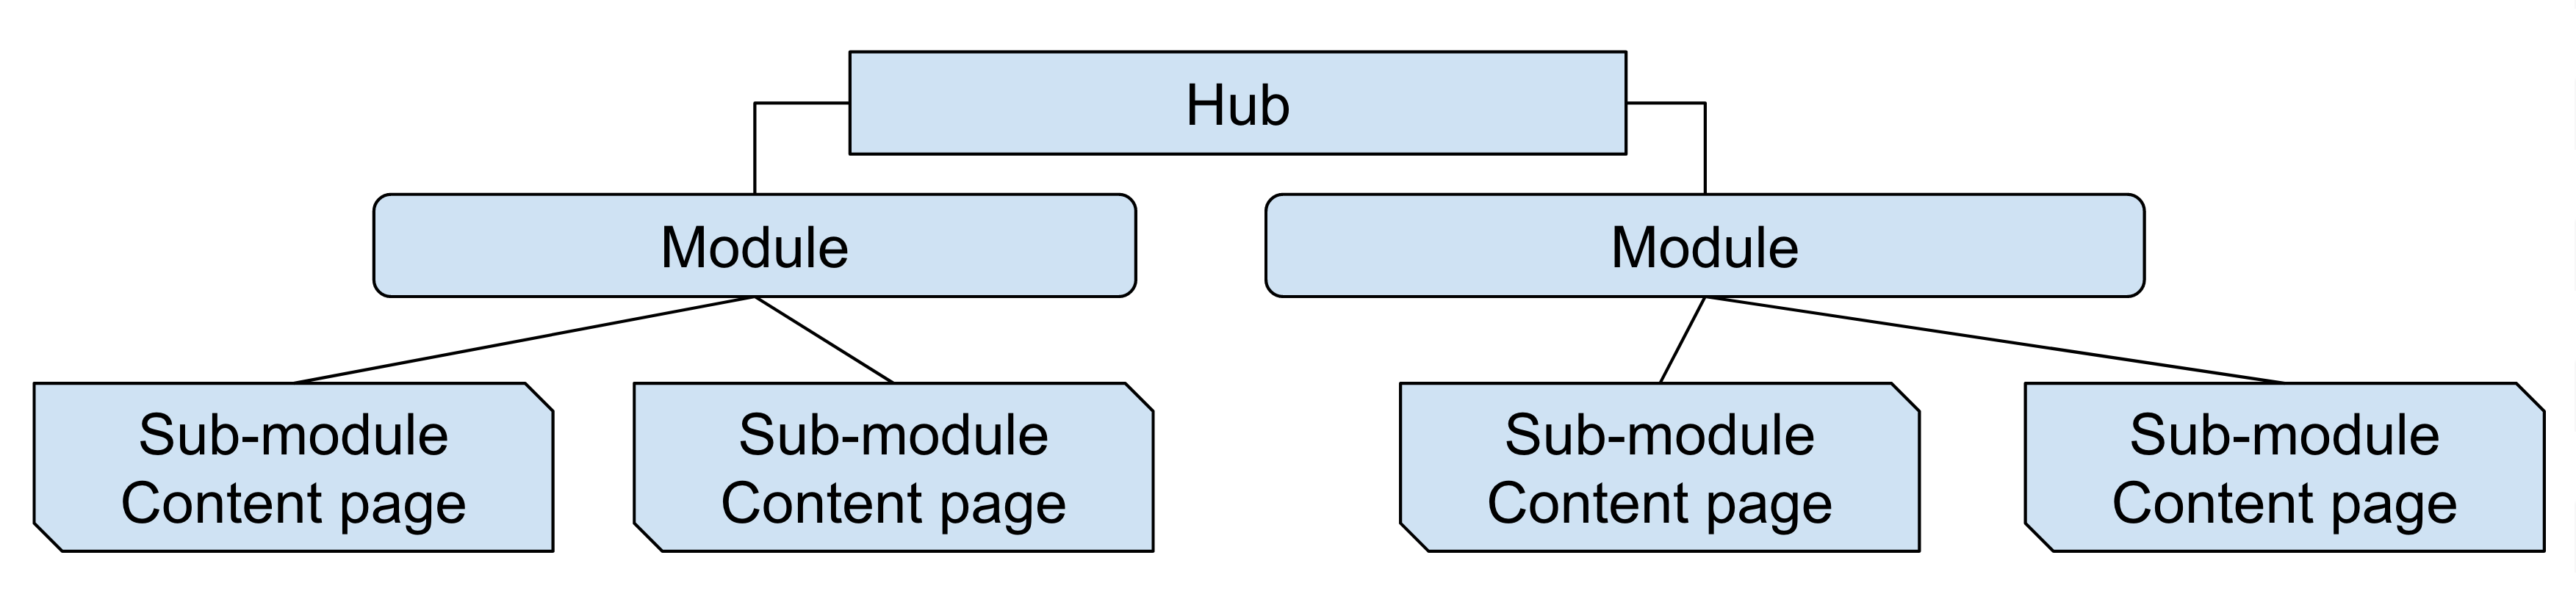 A flow chart depicting the structure of an example hub with module pages and sub-module content pages. A box labelled 'Hub' is at the top. It connects to two boxes that are each labelled 'Module'. Each 'Module' box connect to two more boxes, each of which is labelled 'Sub module content page'.